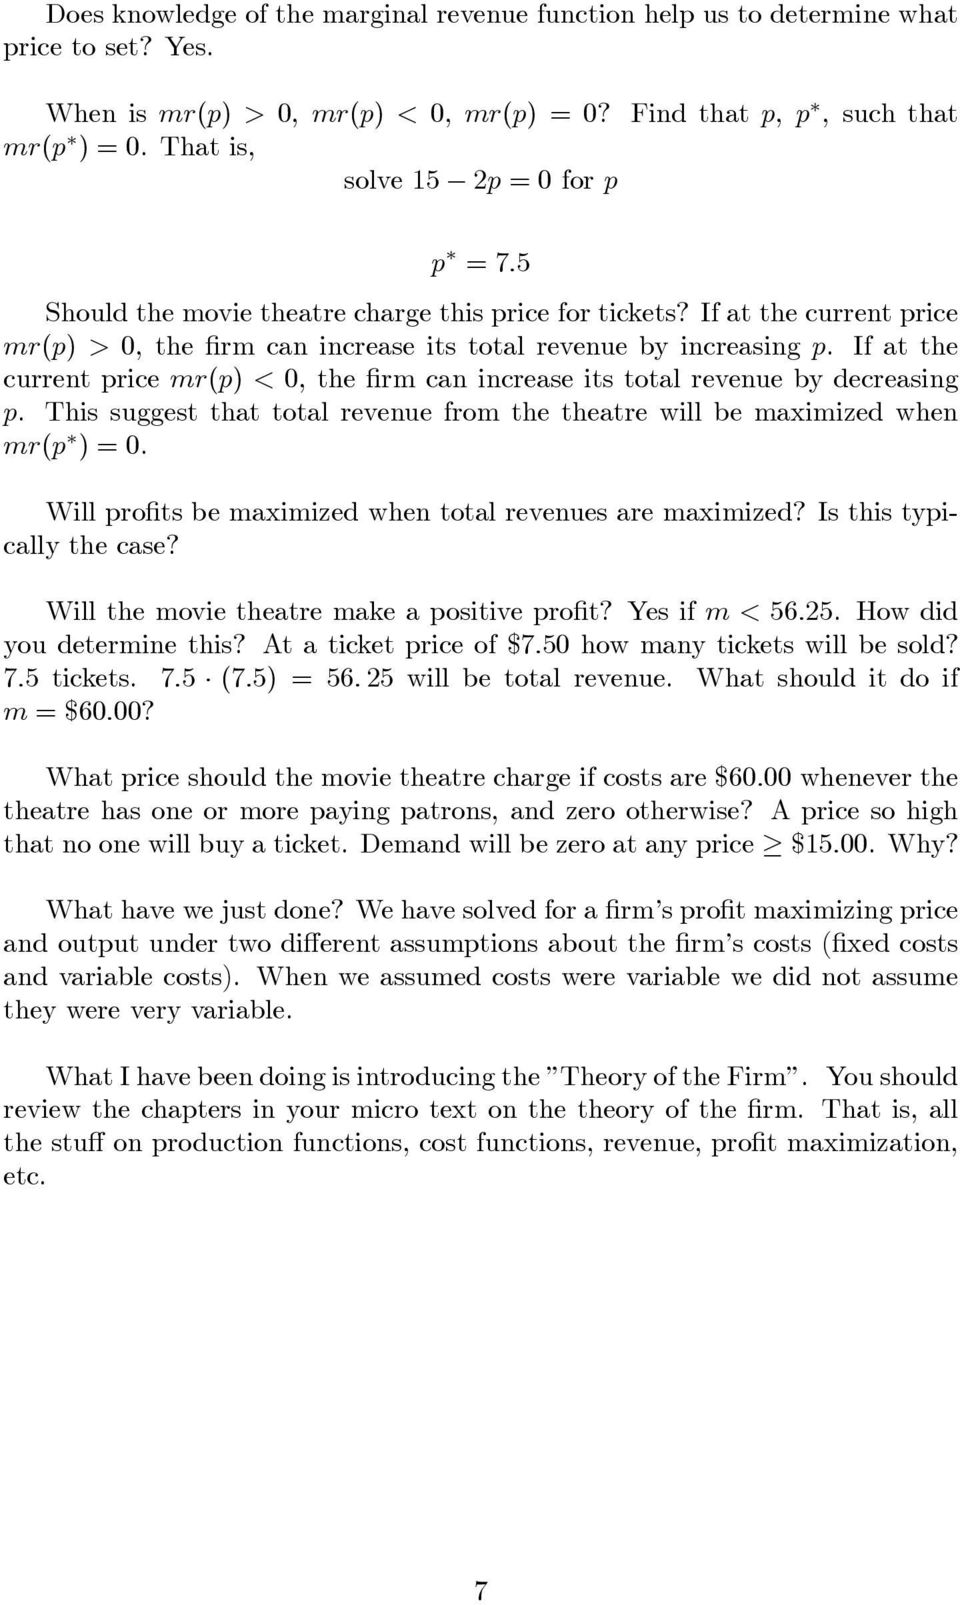 If at the current price mr(p) < 0, the rm can increase its total revenue by decreasing p. This suggest that total revenue from the theatre will be maimized when mr(p ) = 0.